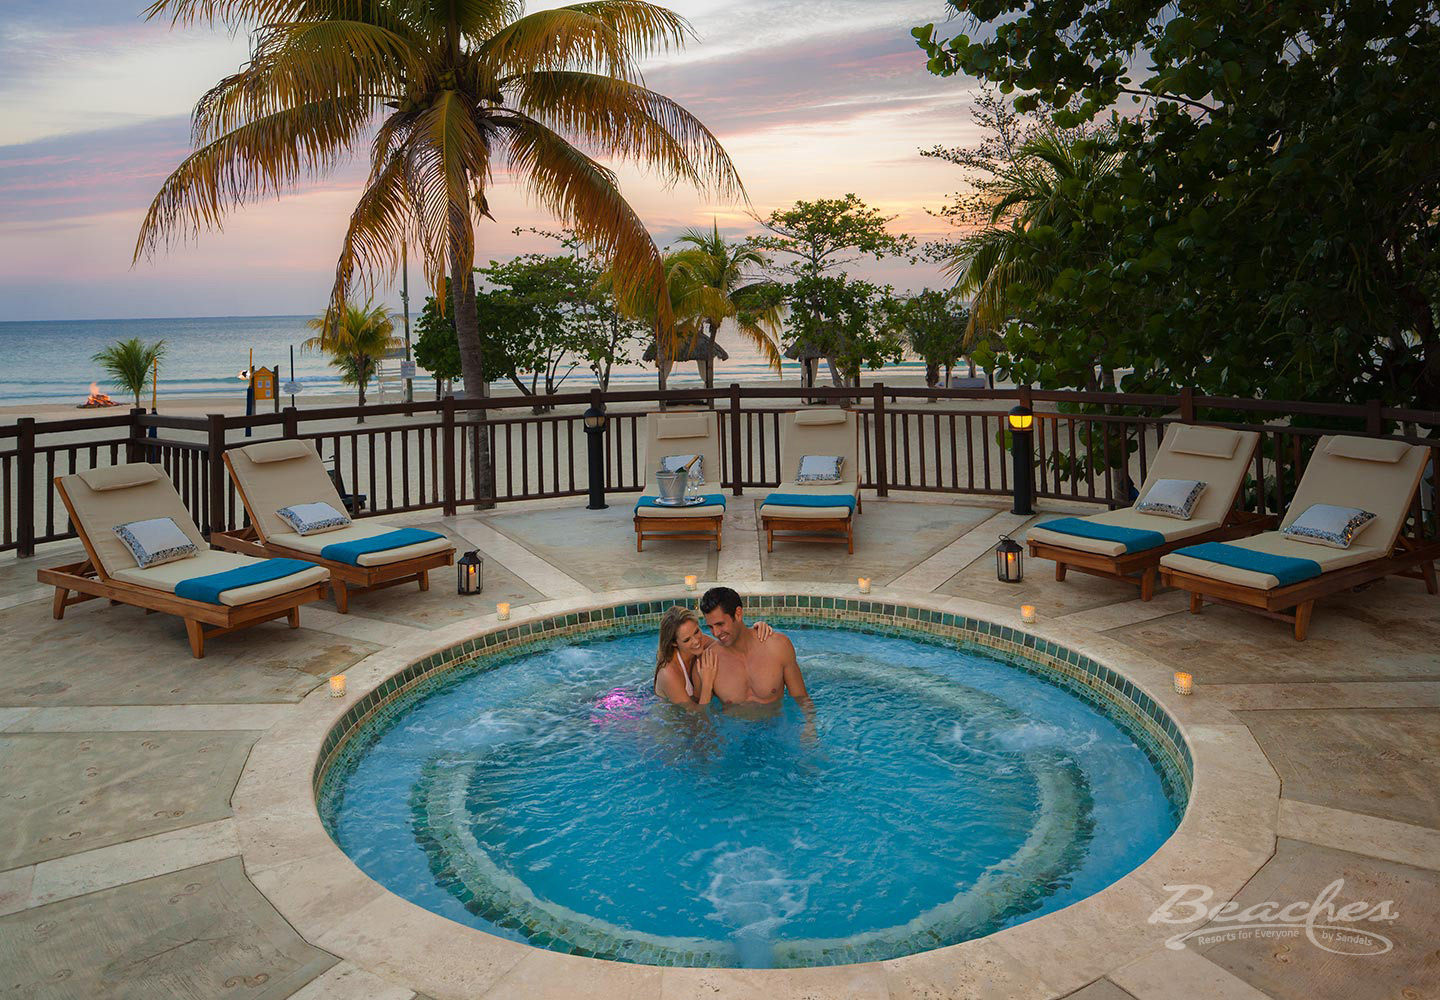 Travel Agency All-Inclusive Resort Beaches Negril 062